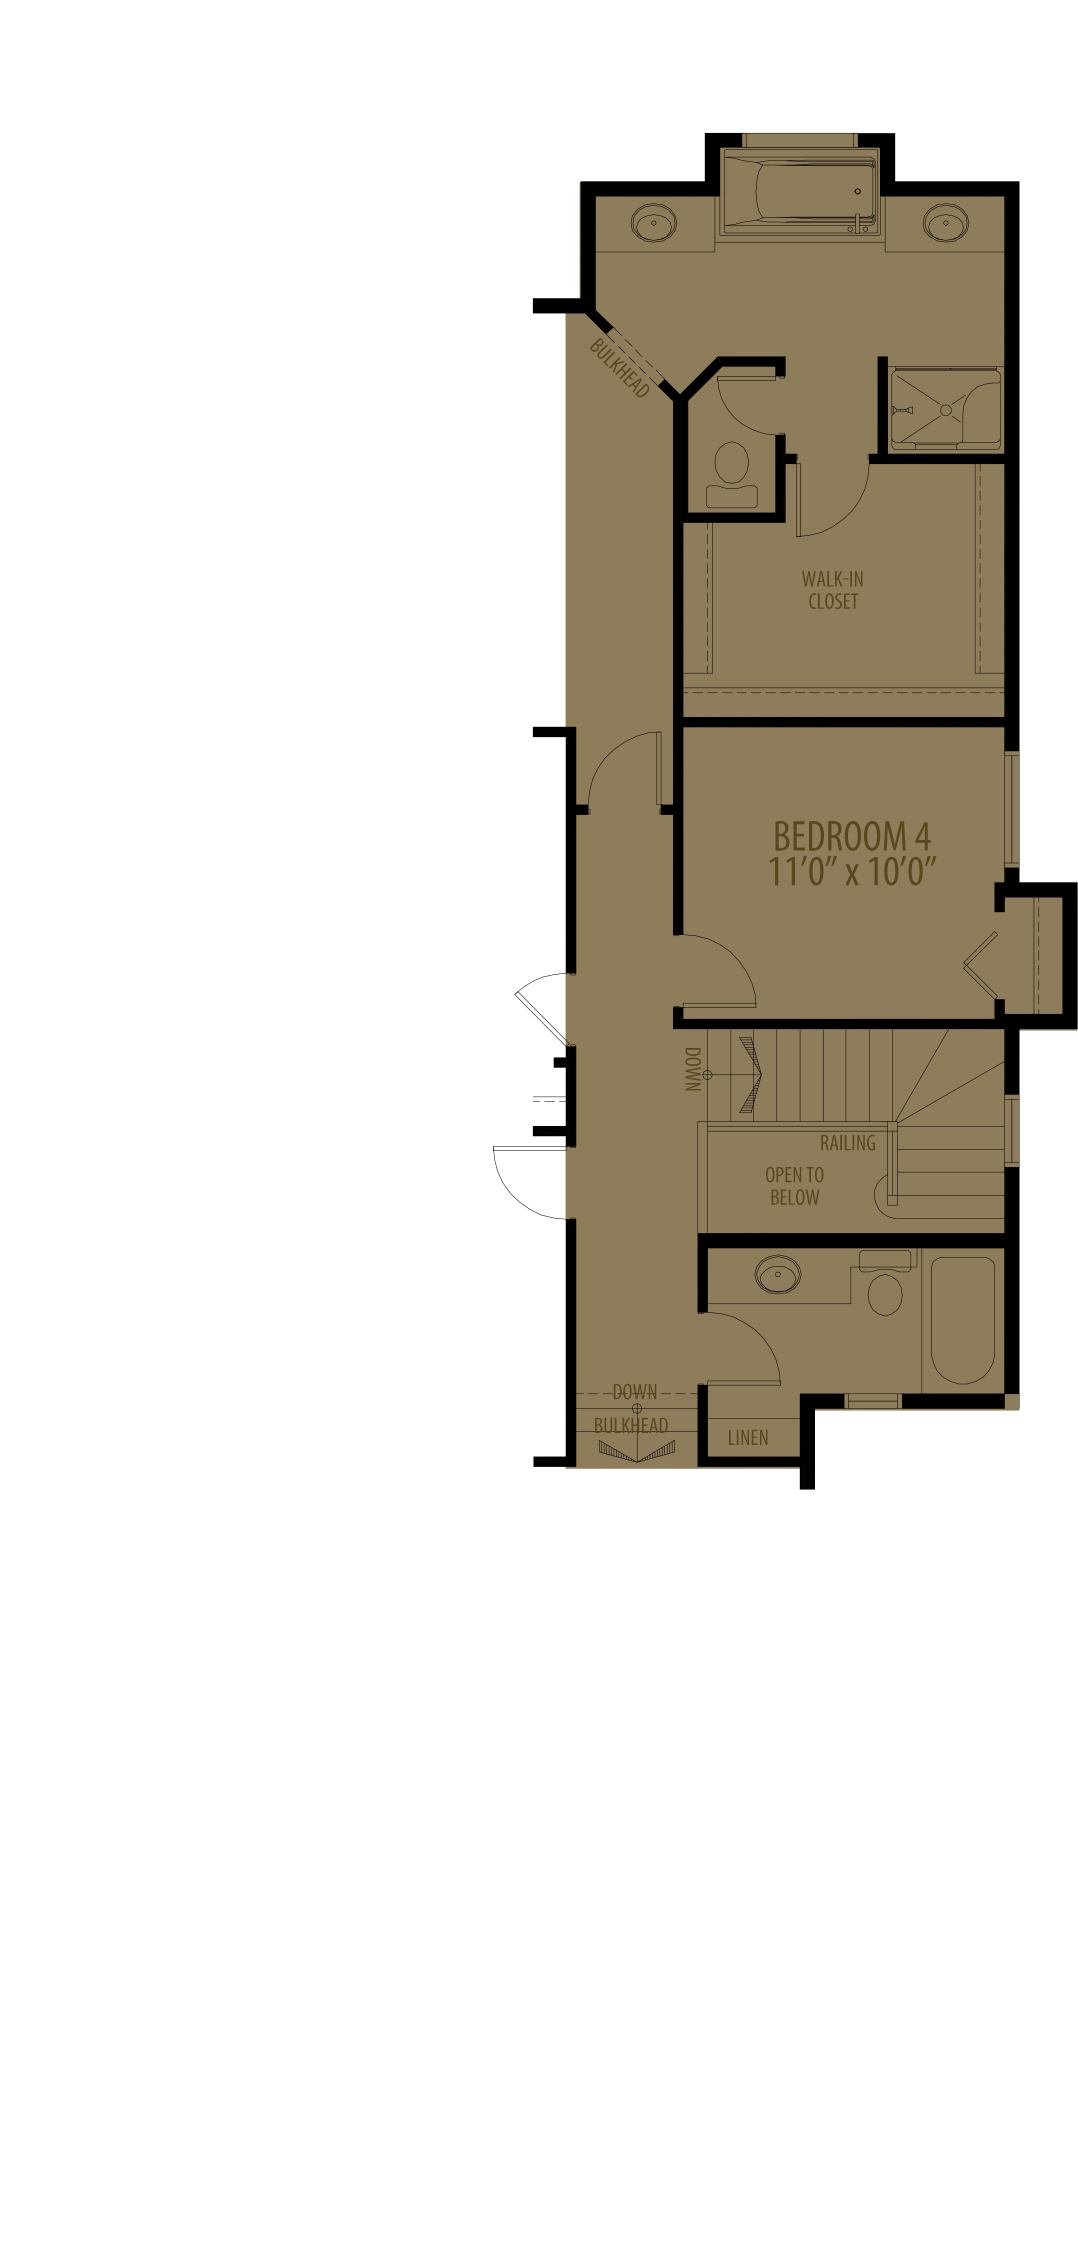 4Th Bedroom Deluxe Ensuite adds 143 sq ft